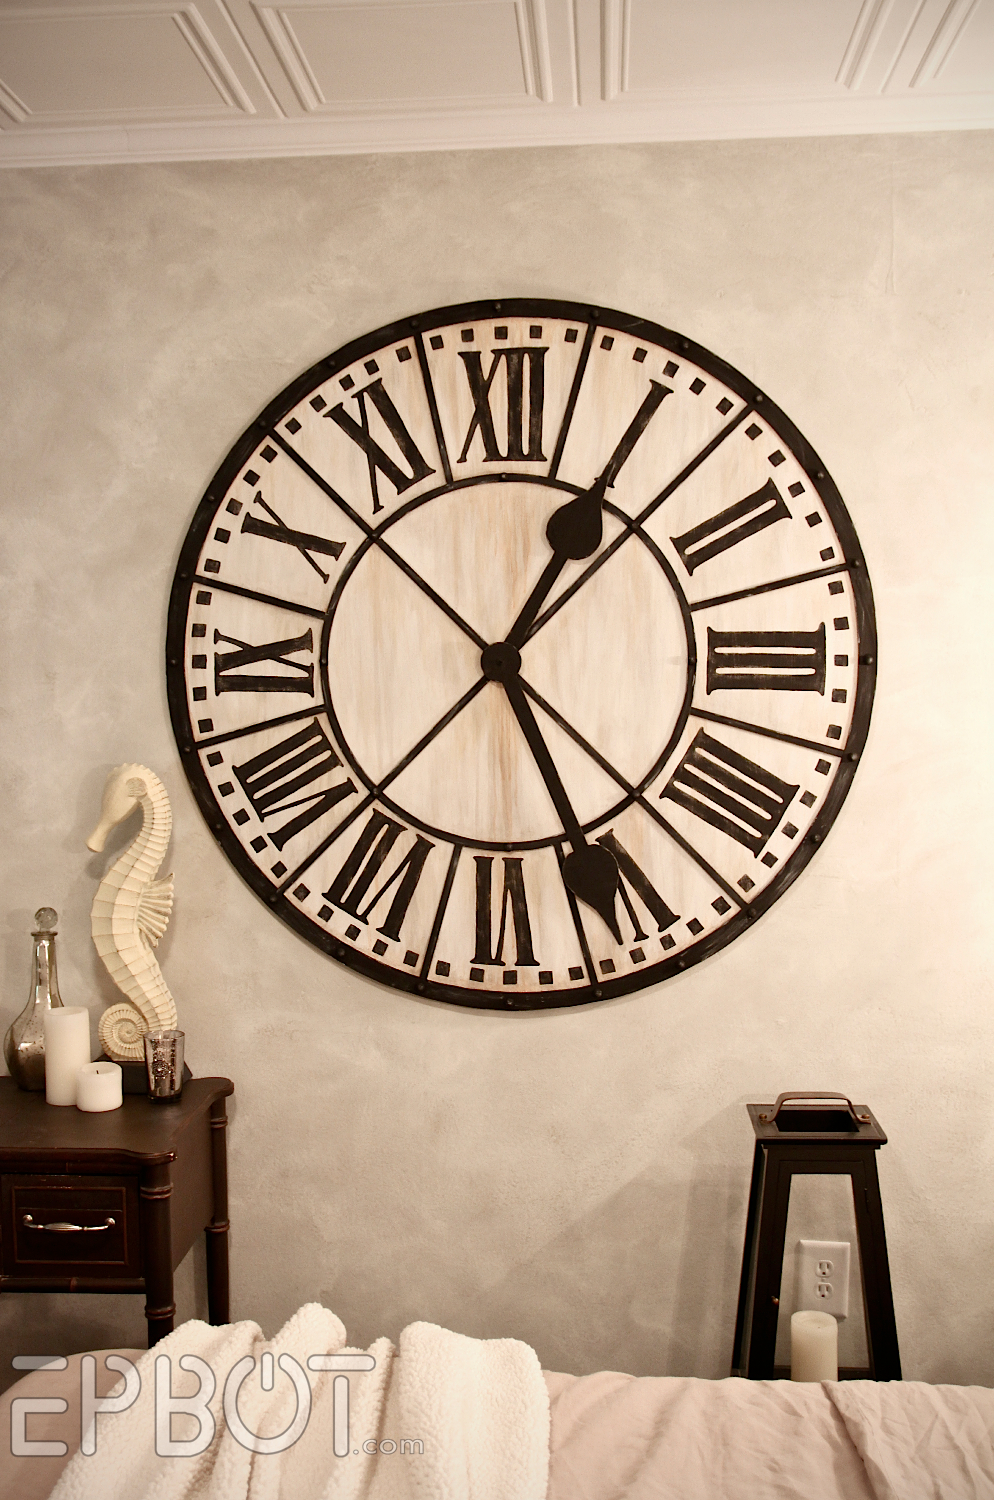 Epbot diy giant tower wall clock diy giant tower wall clock amipublicfo Gallery